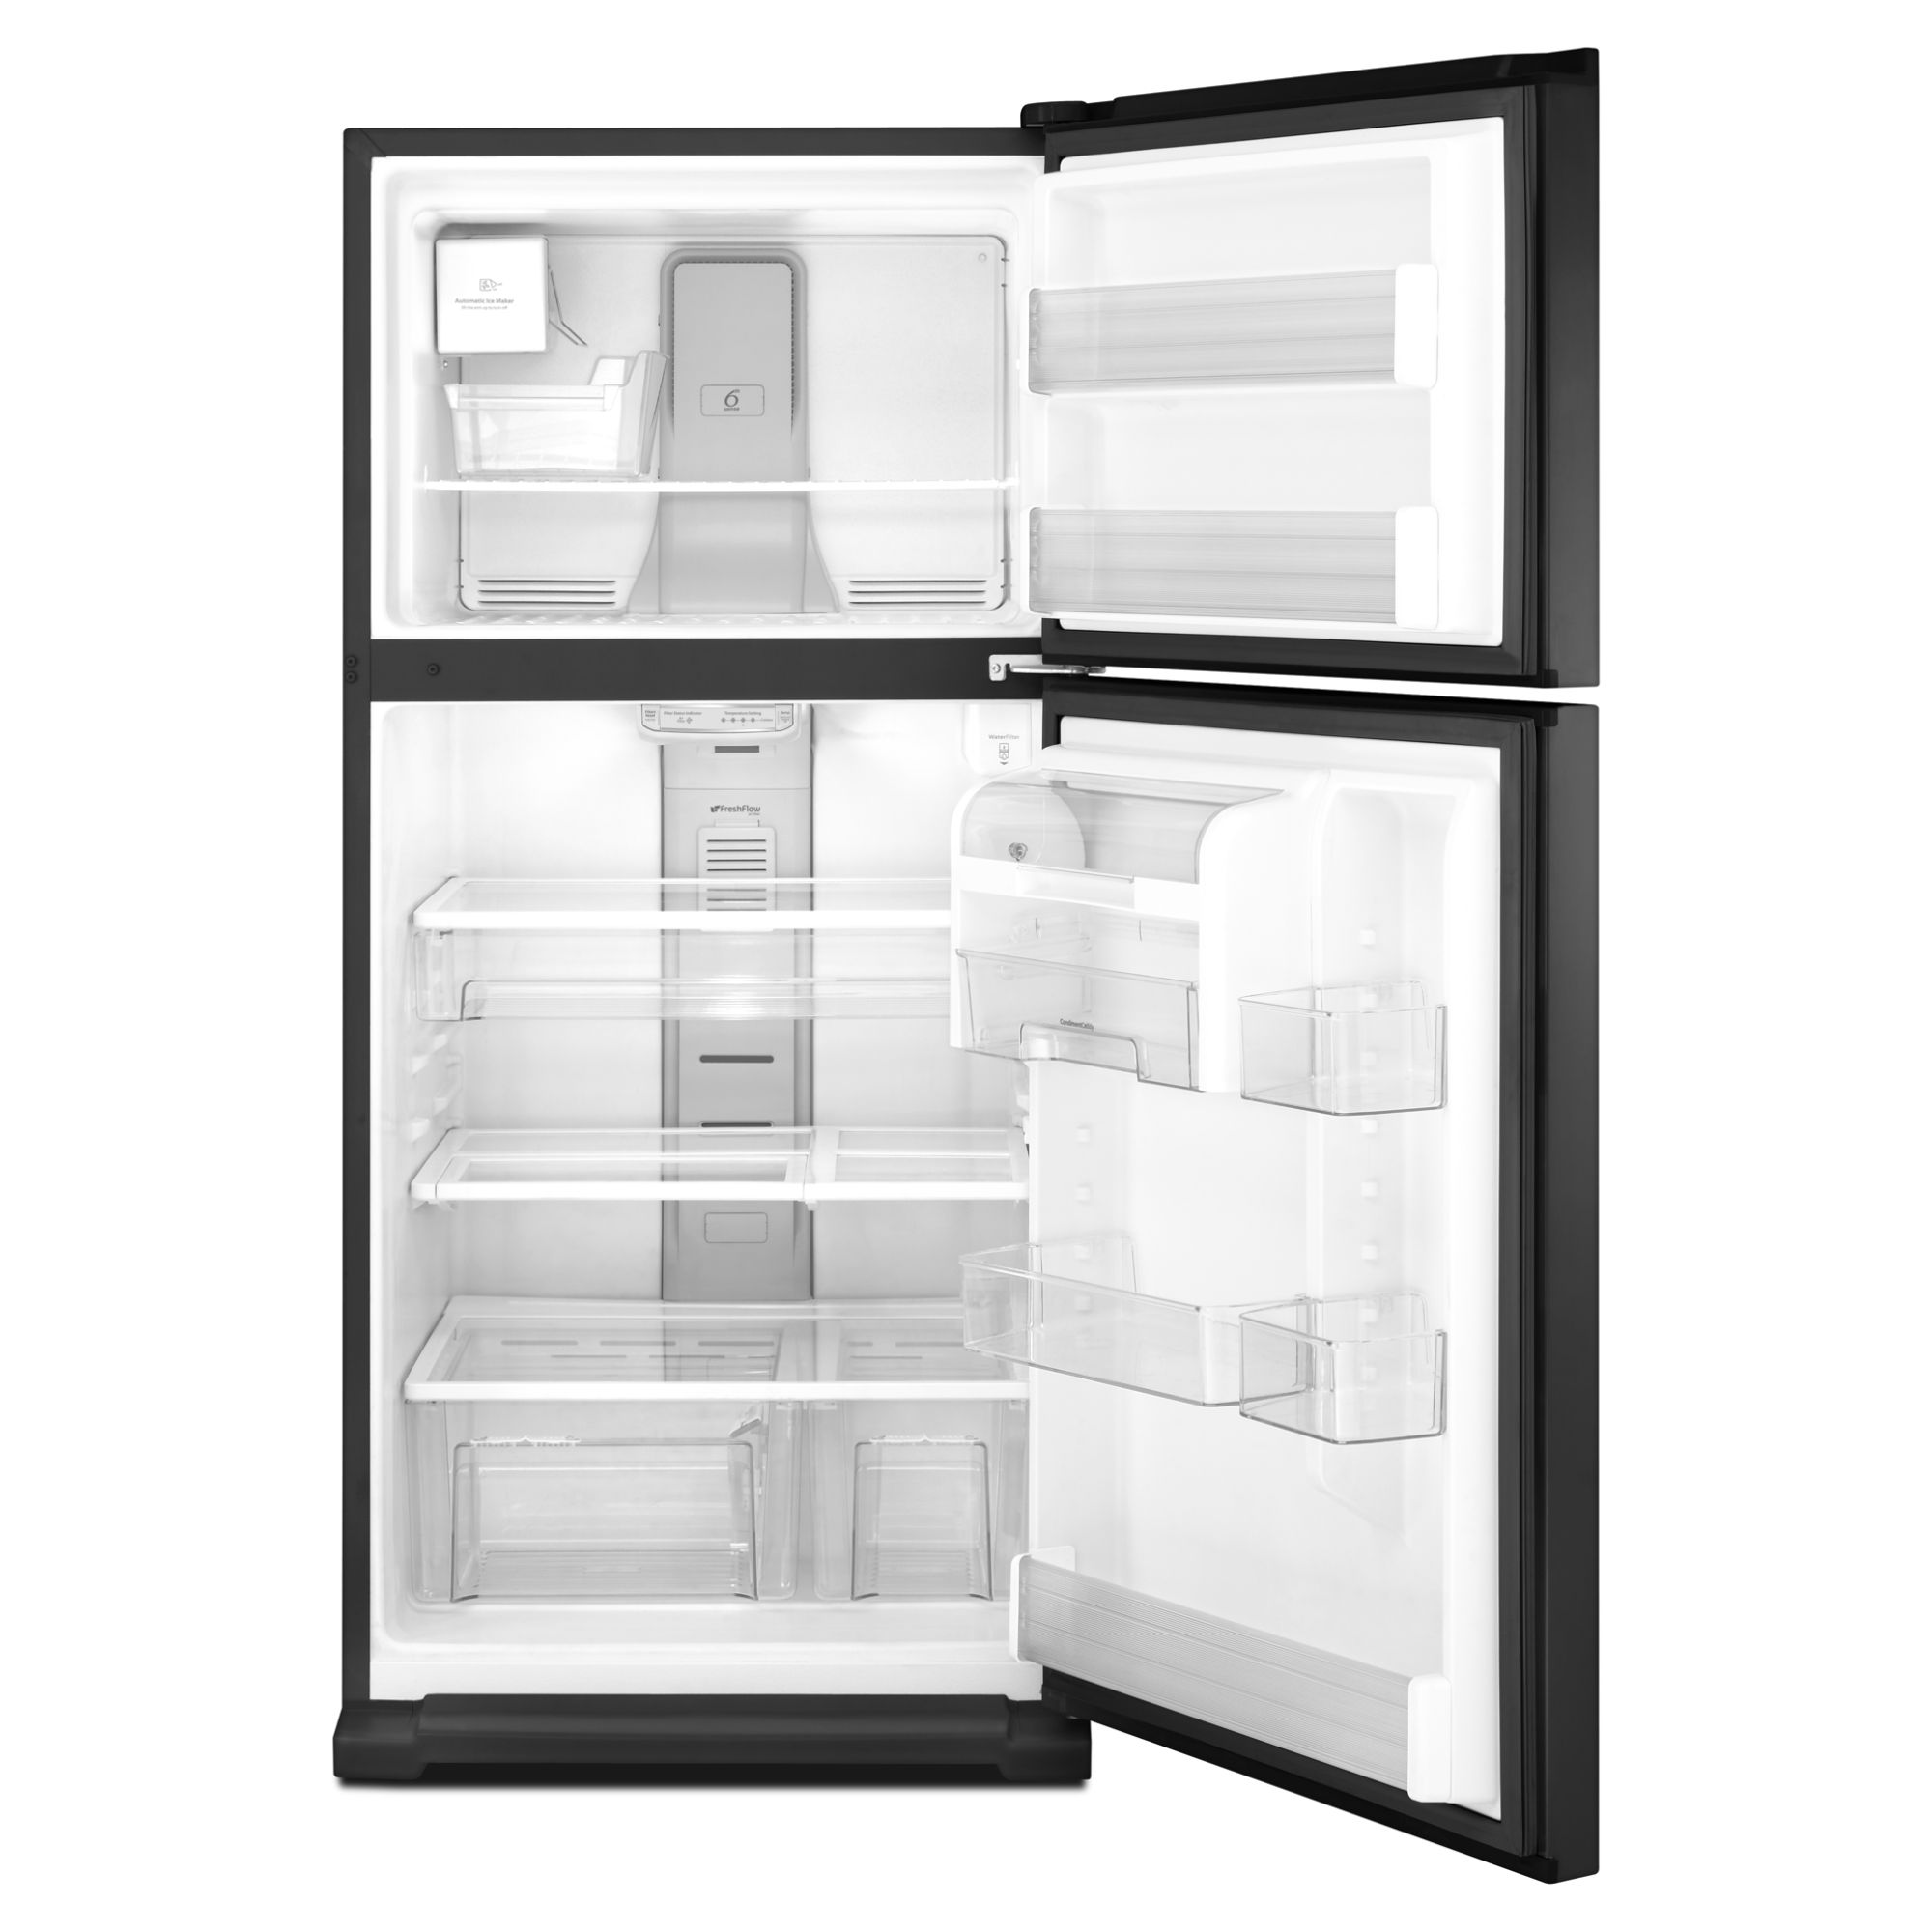 Whirlpool 18.9 cu. ft. Top-Freezer Refrigerator w/ CEE Tier 3 Rating - Black